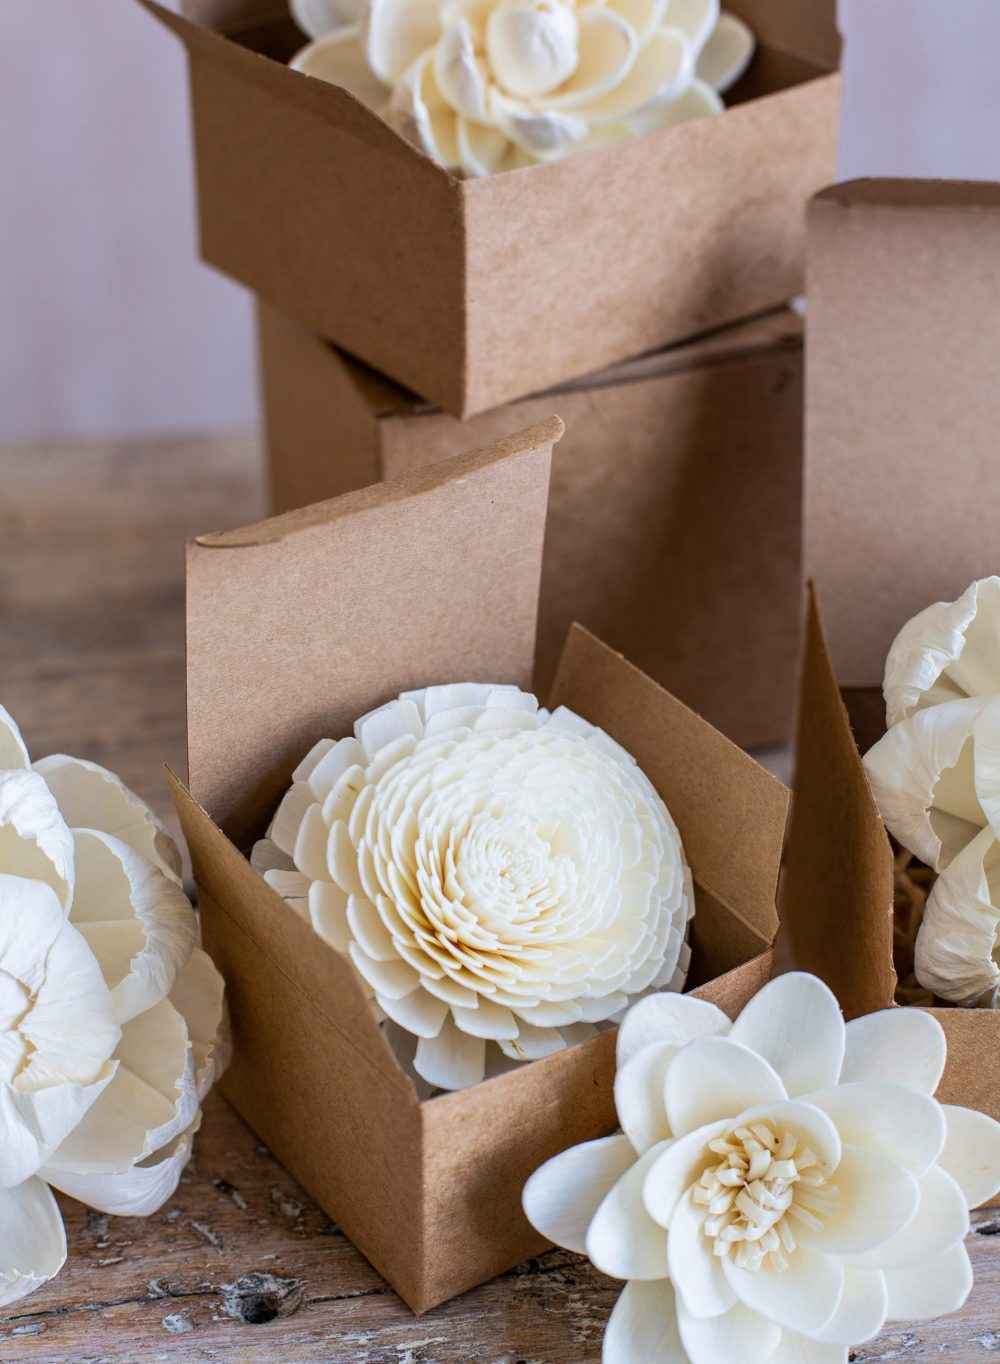 Boxed Diffuser Flowers from Vintage and Bespoke